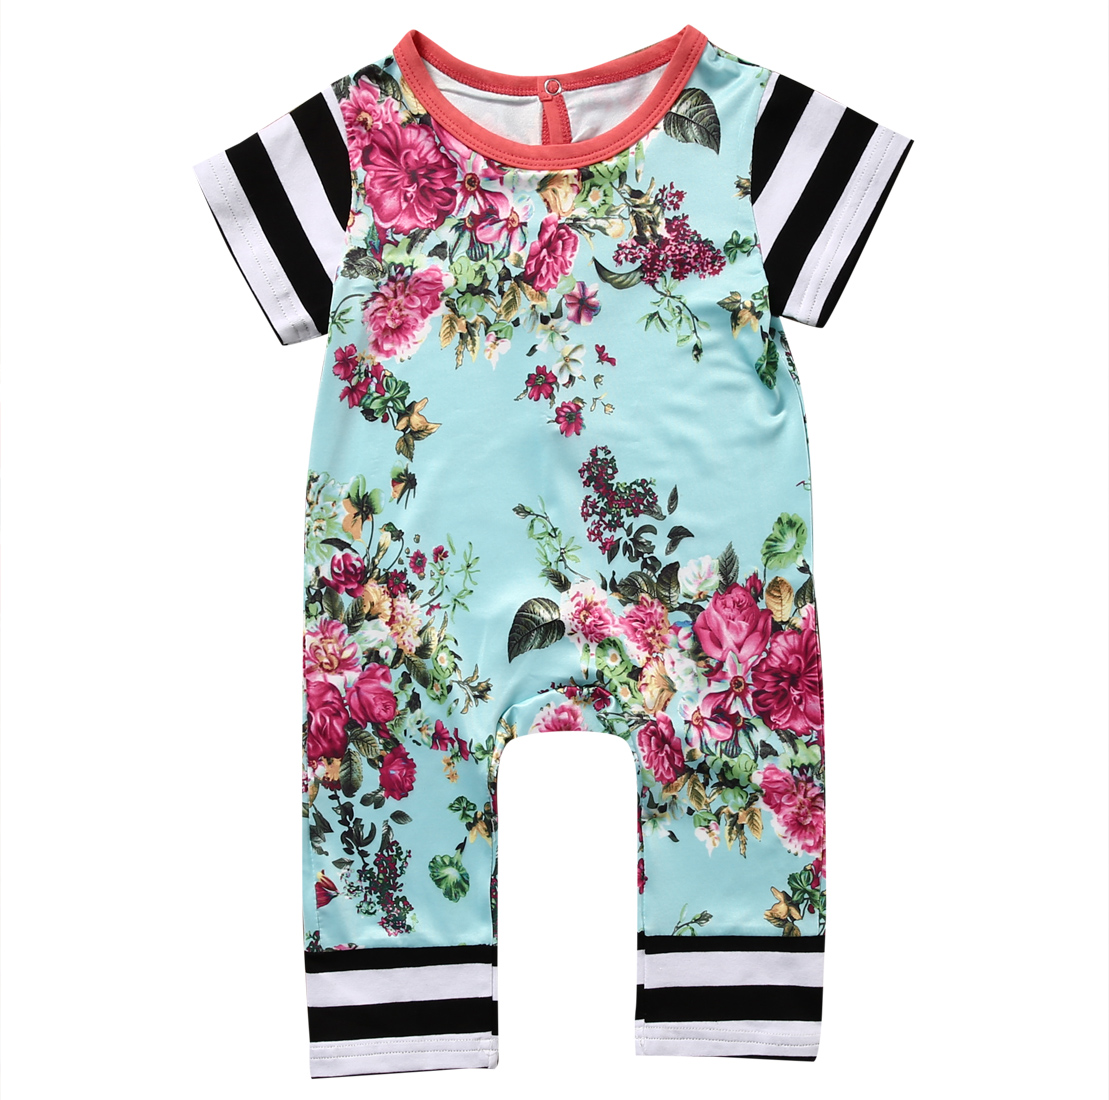 Newborn Baby Girls Boys Clothing Romper Short Sleeve Flower Cute Jumpsuit Kids Baby Girl Clothes Outfit Summer baby clothing summer infant newborn baby romper short sleeve girl boys jumpsuit new born baby clothes